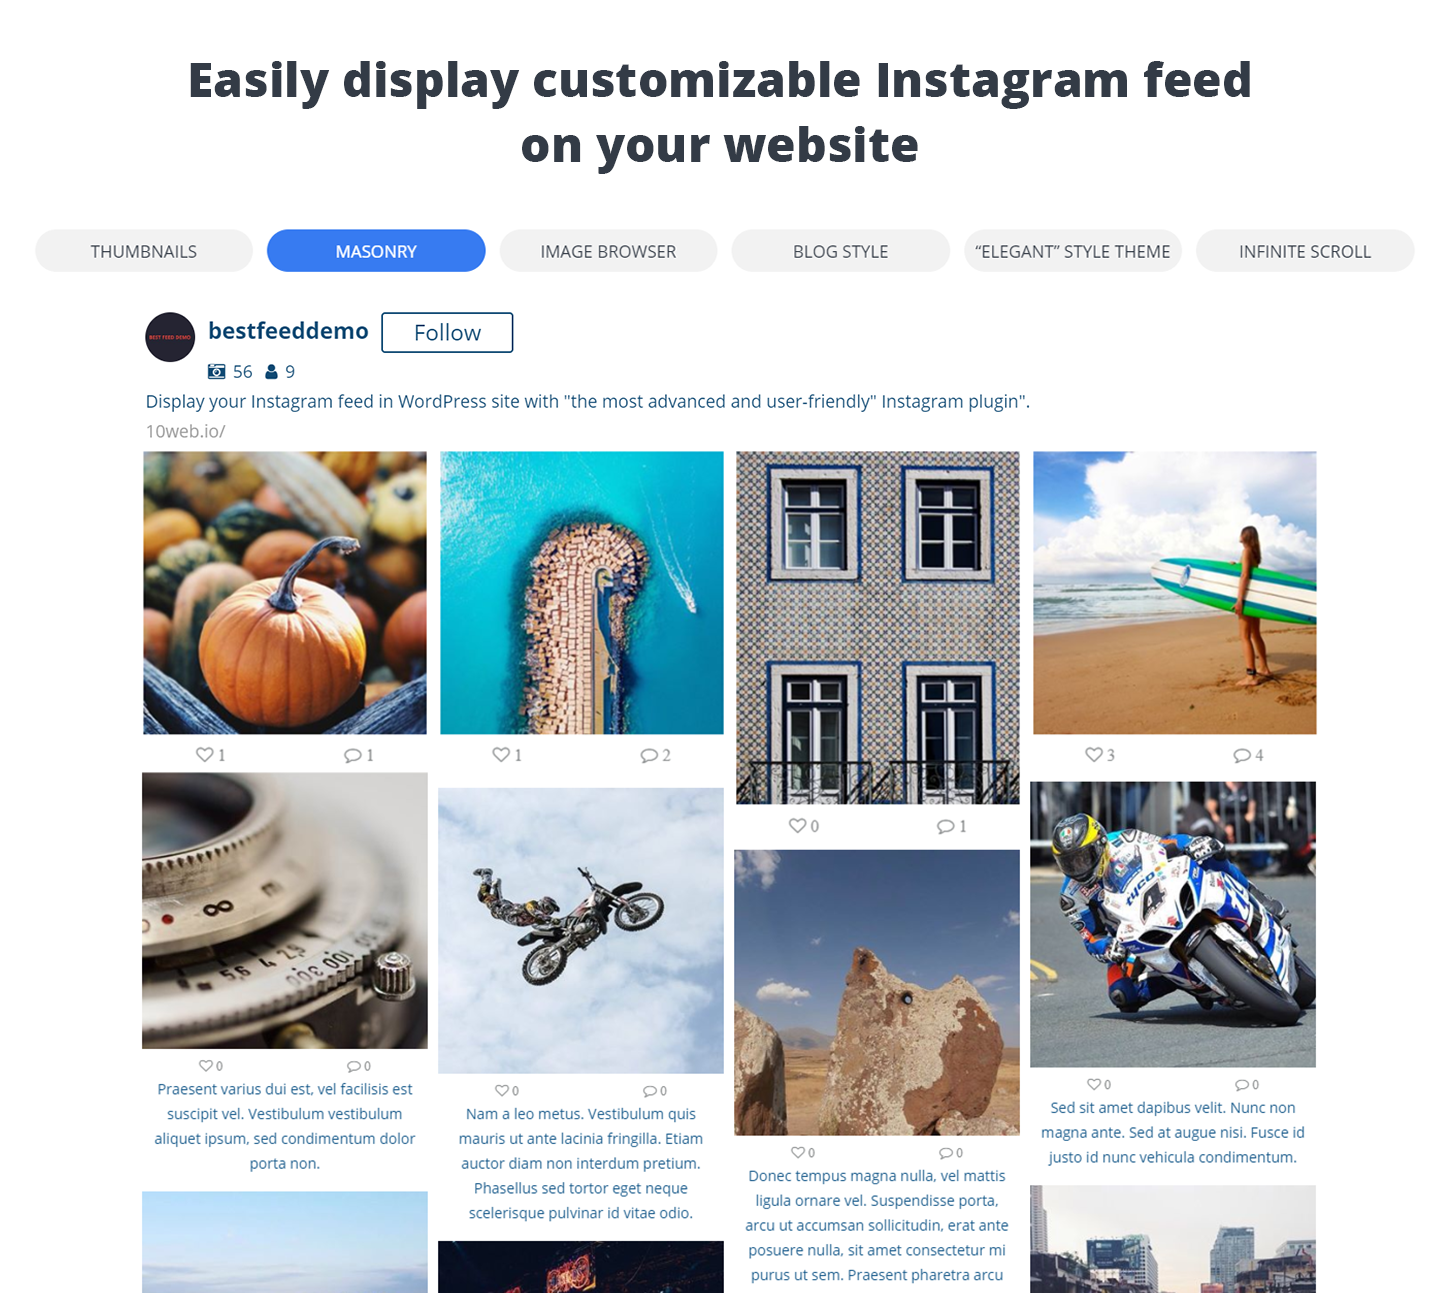 WordPress 10Web Instagram Feed - Image browser layout